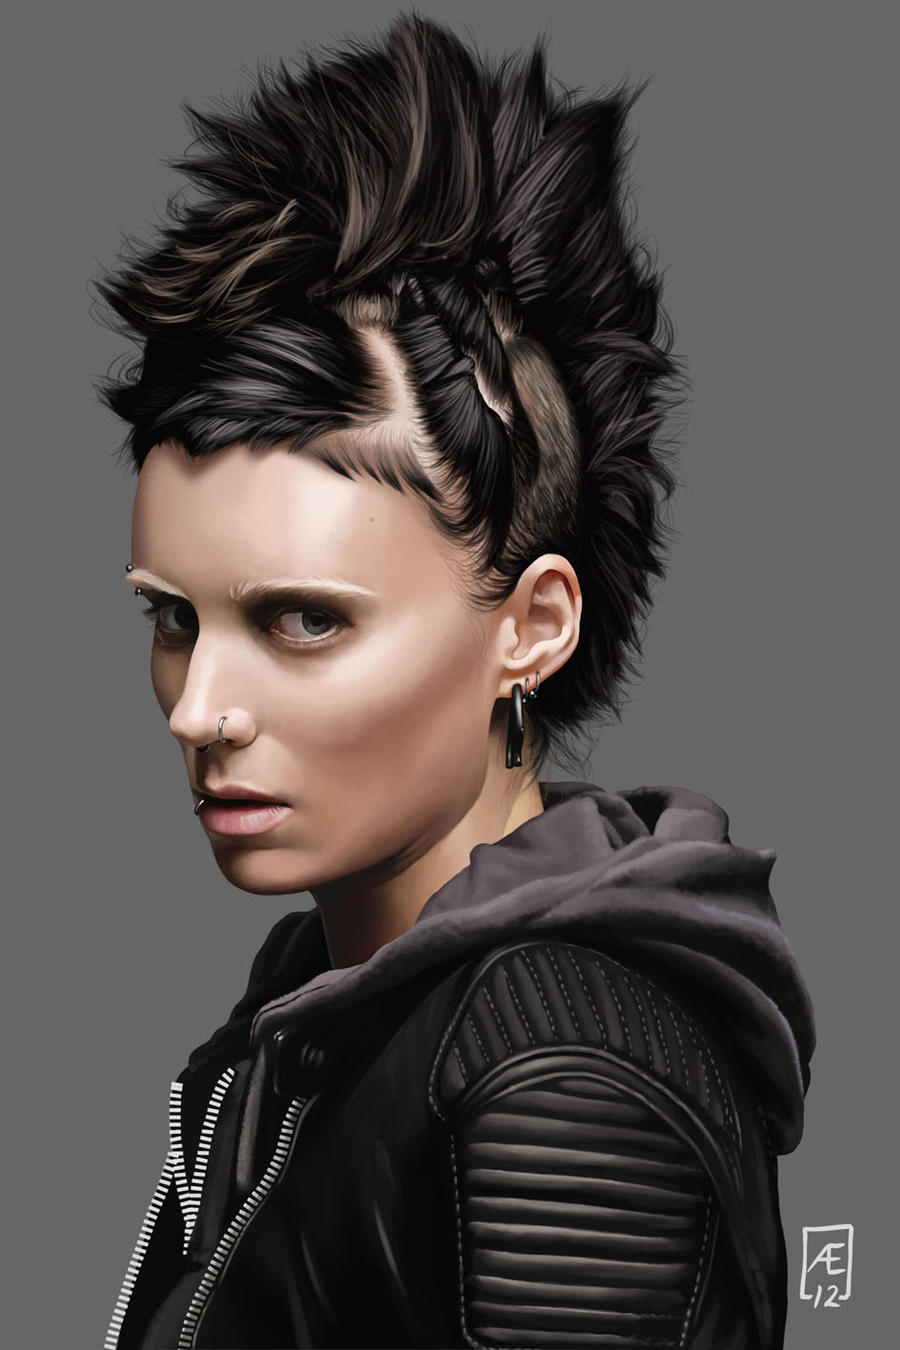 The Girl With The Dragon Tattoo By Aedrian On Deviantart Ideas And Designs